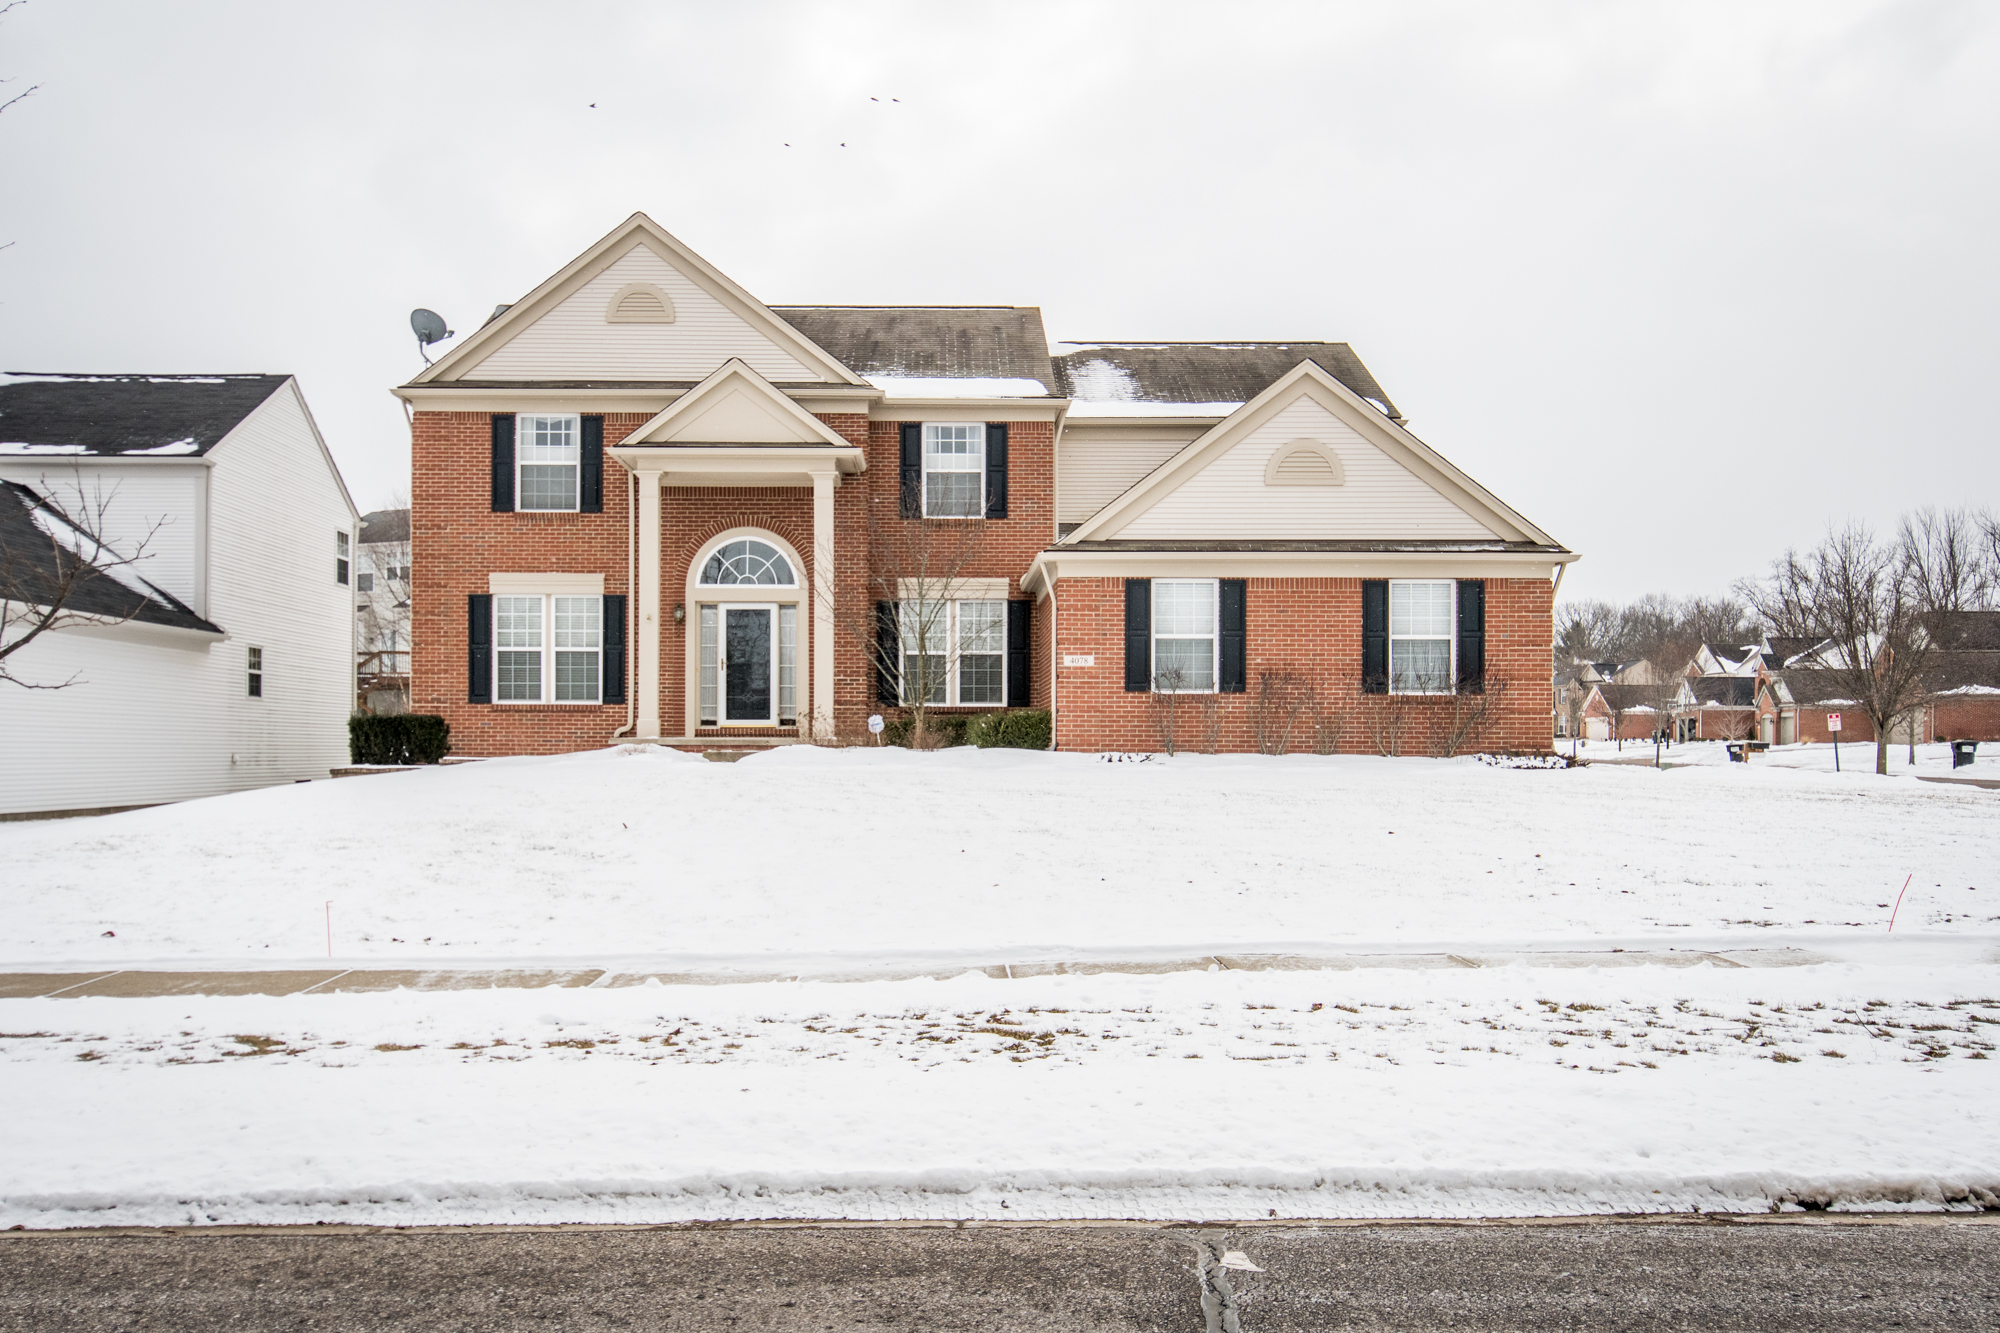 Sonata Dr, Howell - $359,000   DOM 50 / Sold for 97% of asking price / 8 Showings